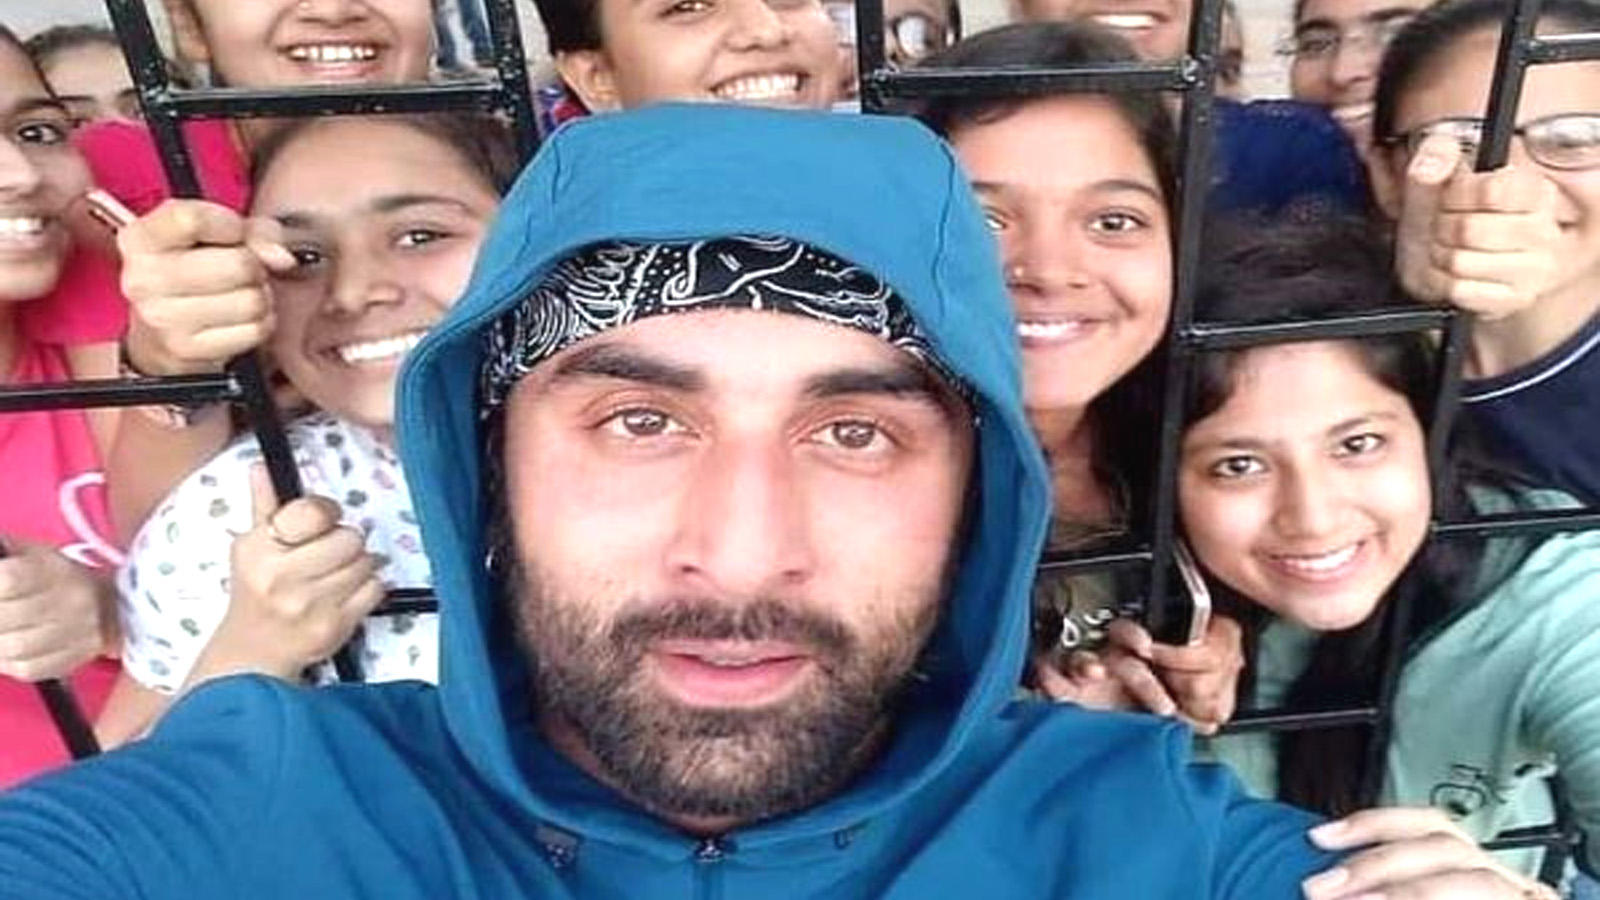 ranbir-kapoors-selfie-with-his-fans-will-surely-win-you-over